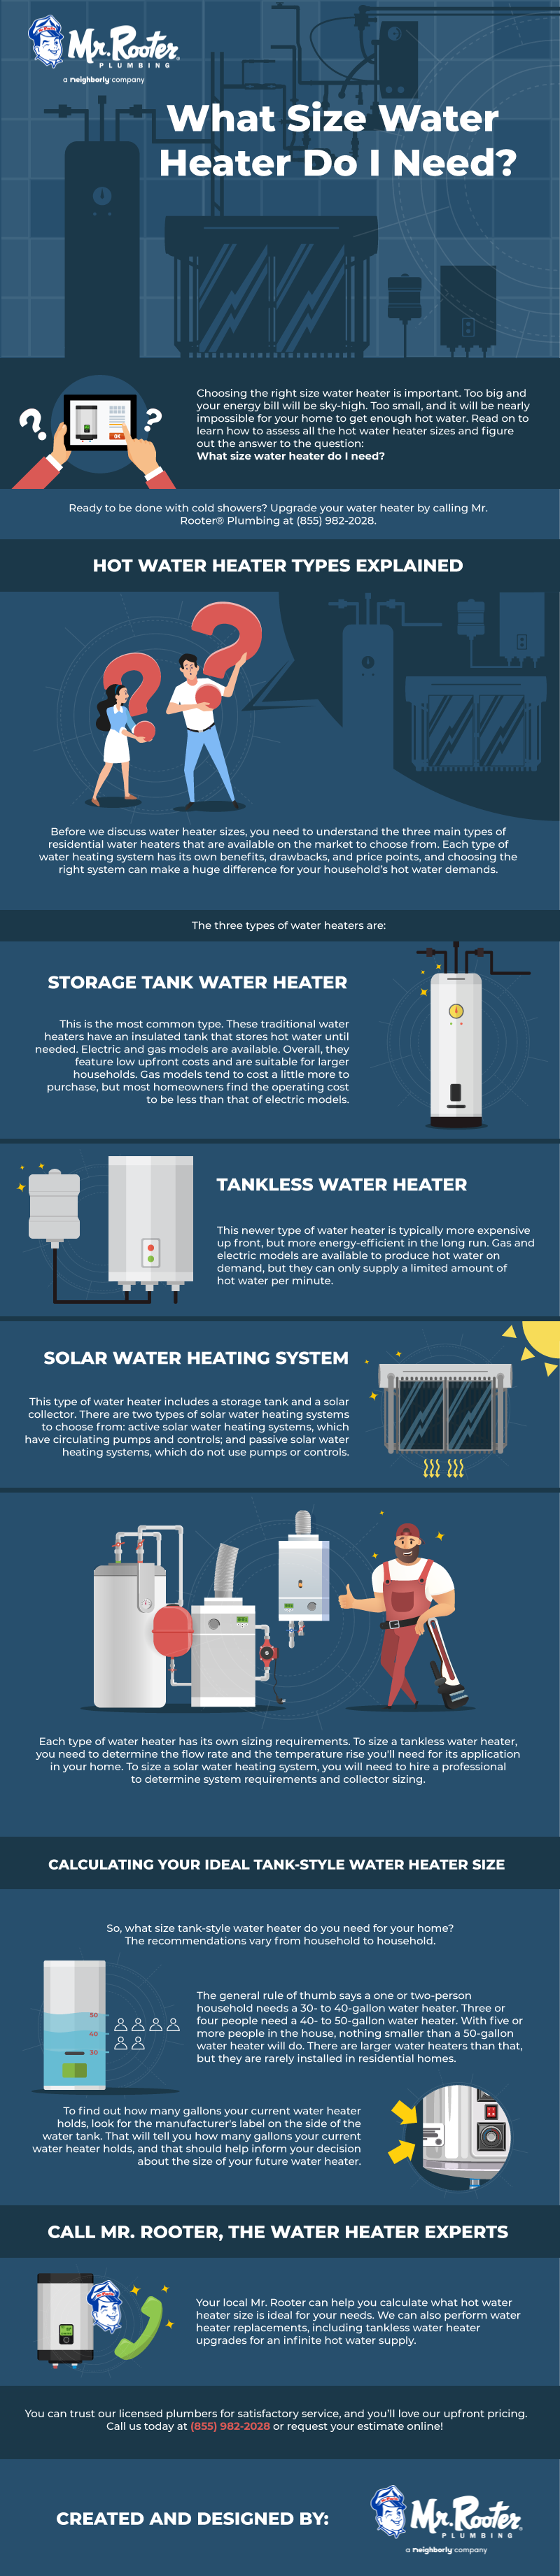 What Size Water Heater Do I Need? Infographic